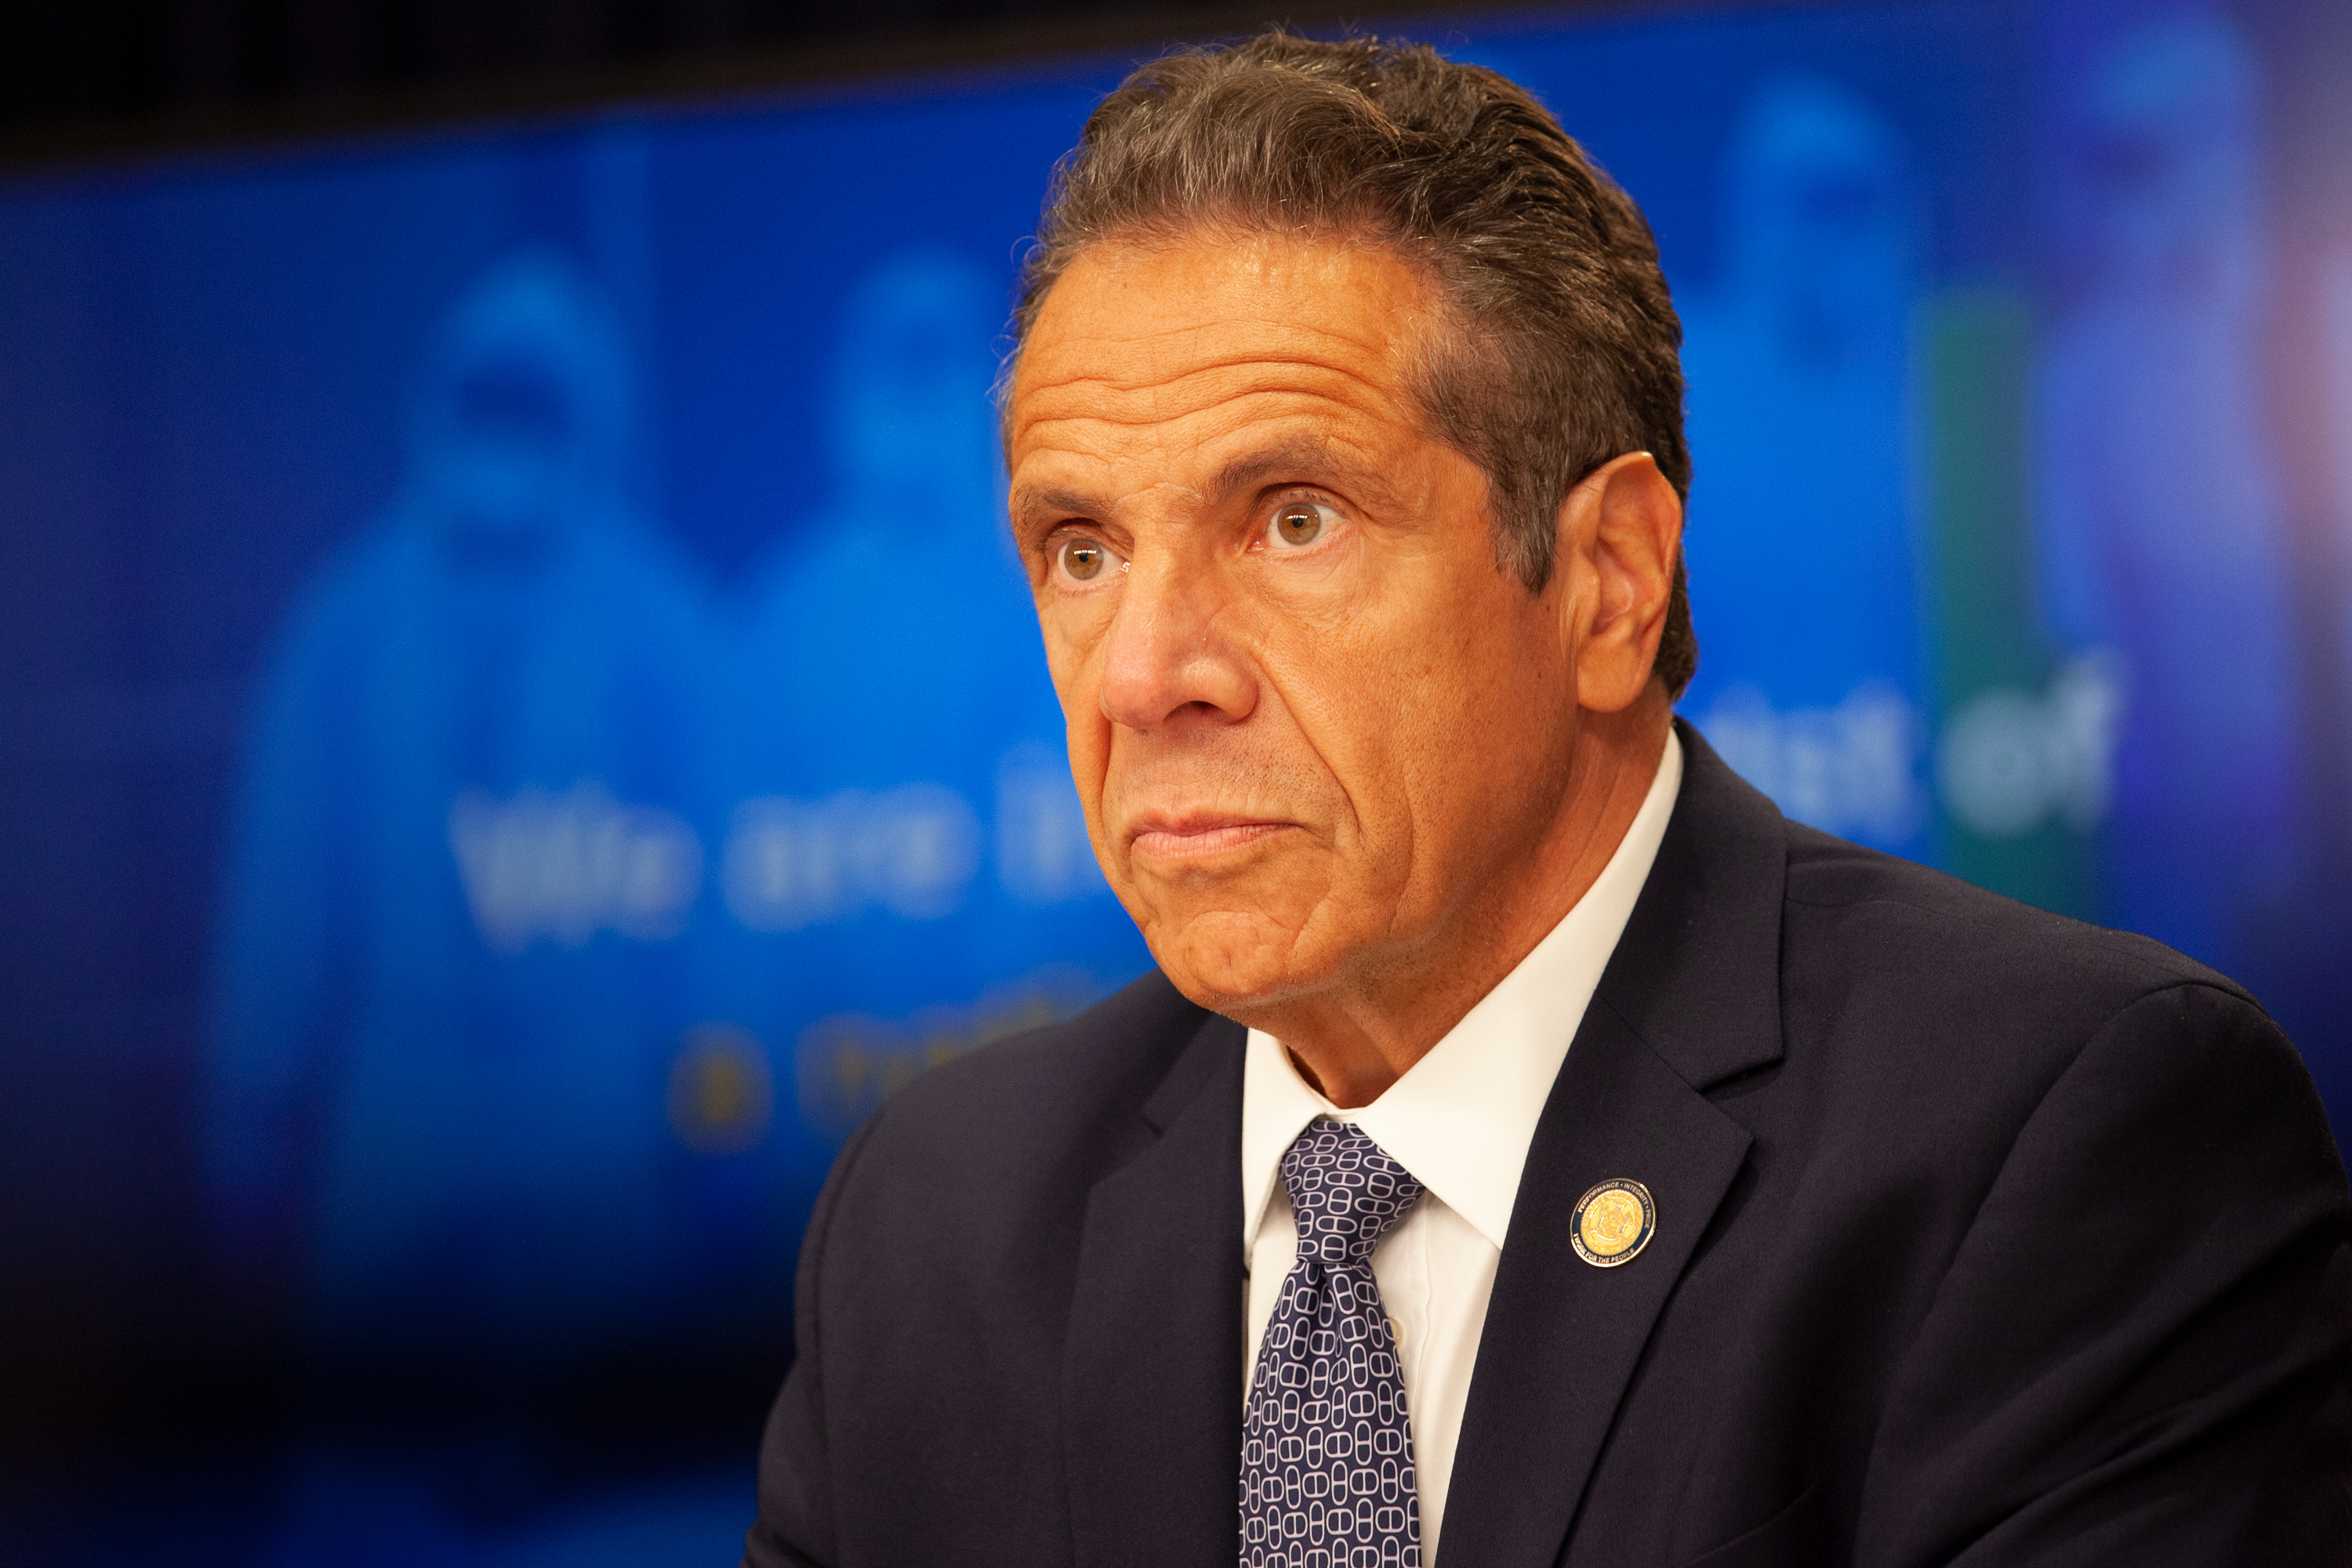 Gov. Andrew Cuomo gives updates on the coronavirus outbreak during a press conference at his midtown office, July 1, 2020.